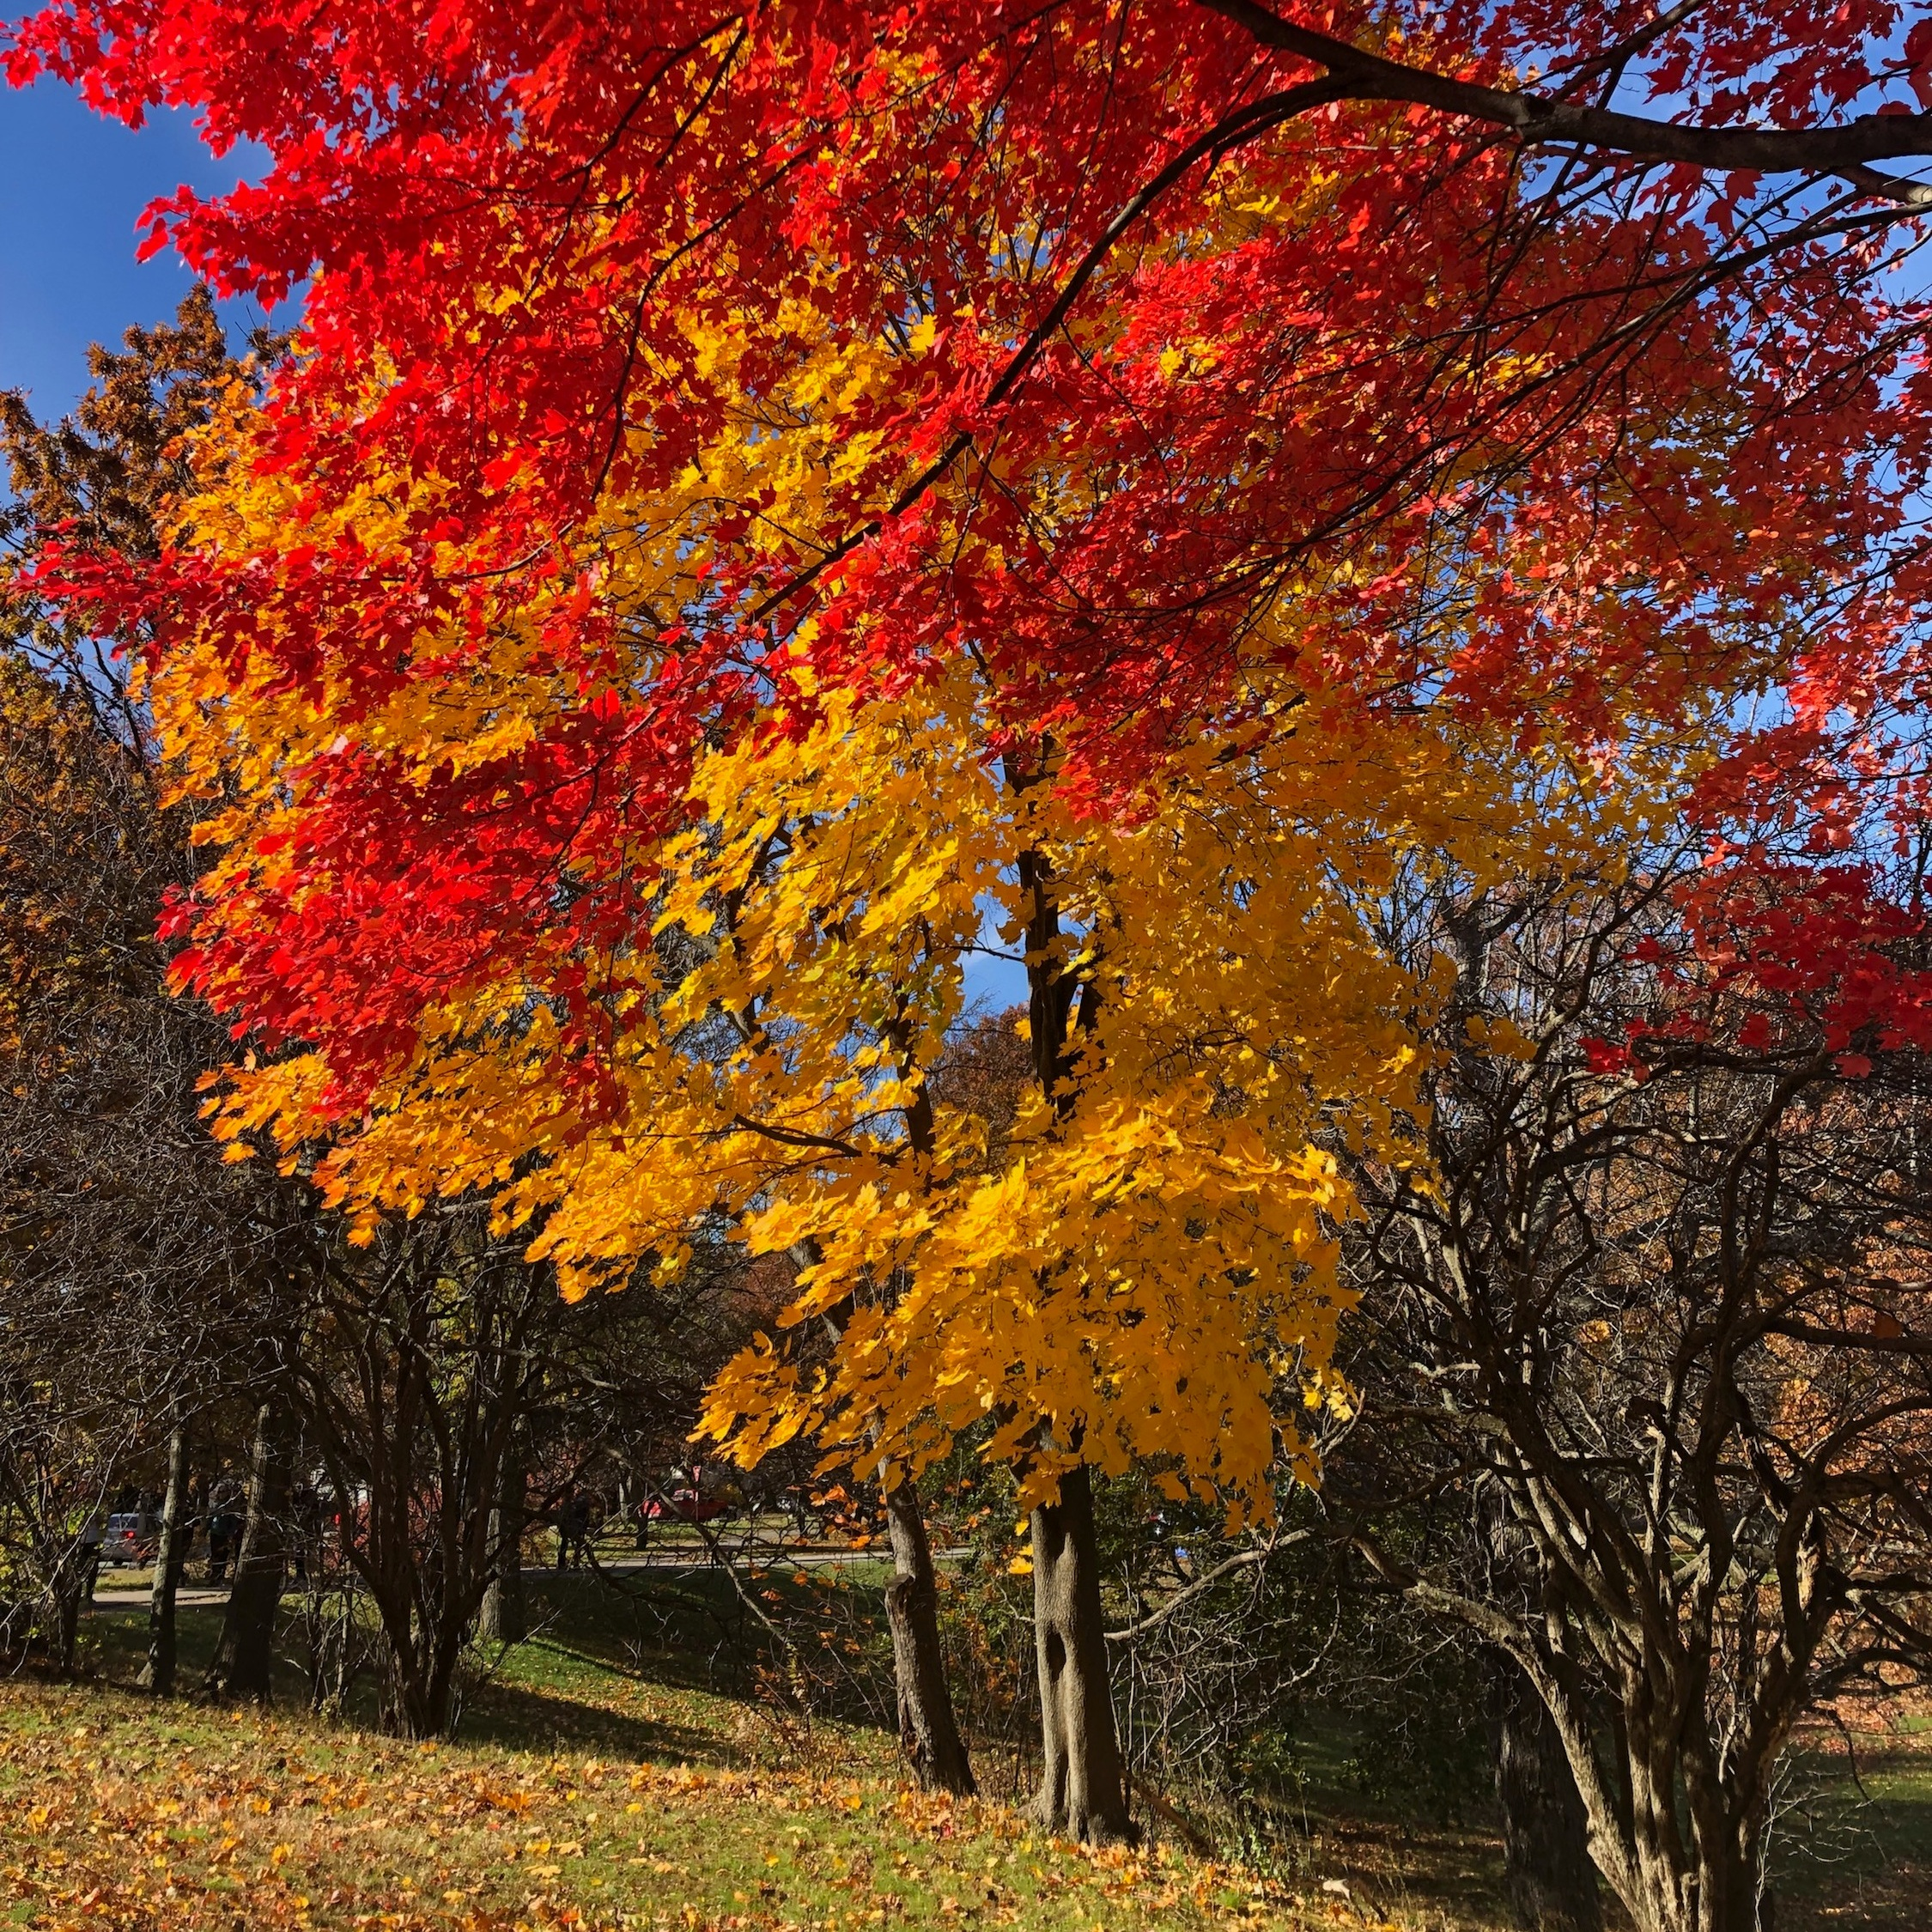 Autumn Leaves by Fiona Lovell Horning